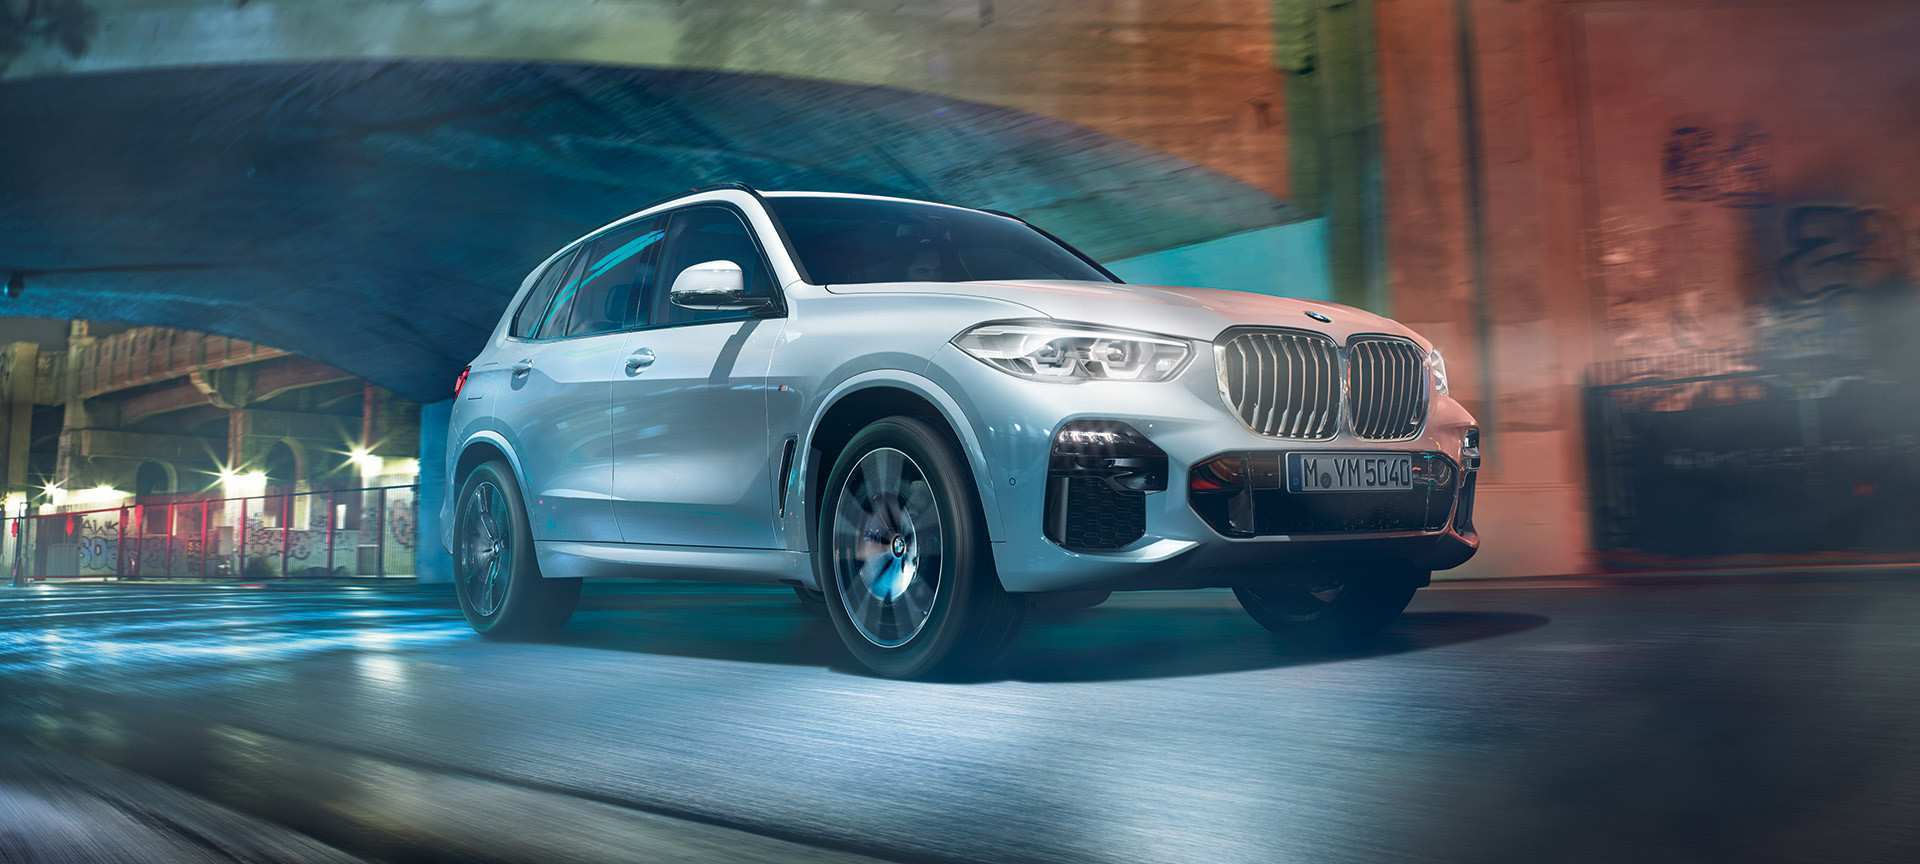 85 New The 2019 Bmw X5 Configurator Usa Redesign And Concept Review with The 2019 Bmw X5 Configurator Usa Redesign And Concept